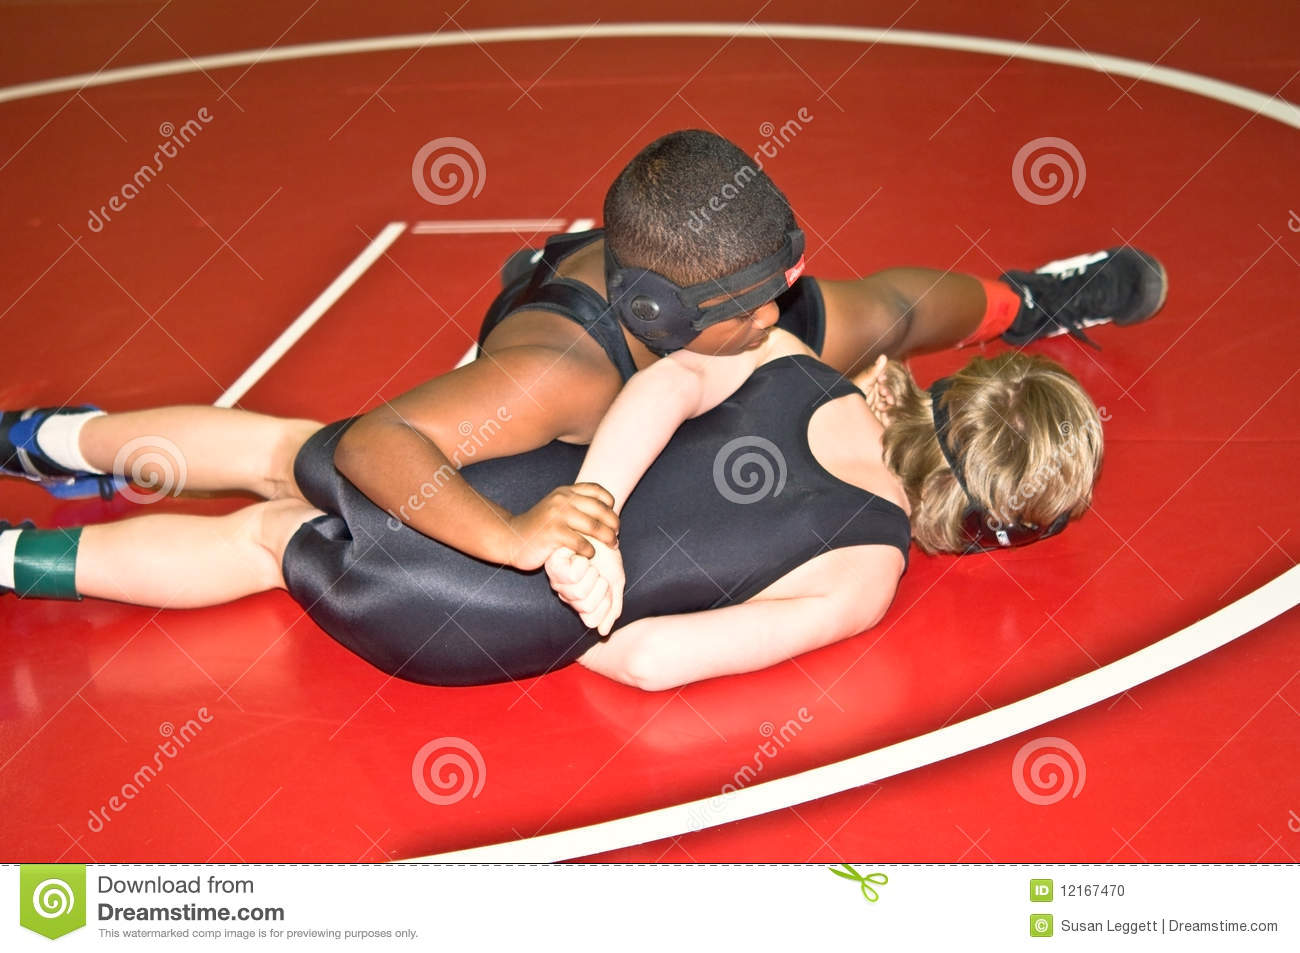 nude wrestling boy girl